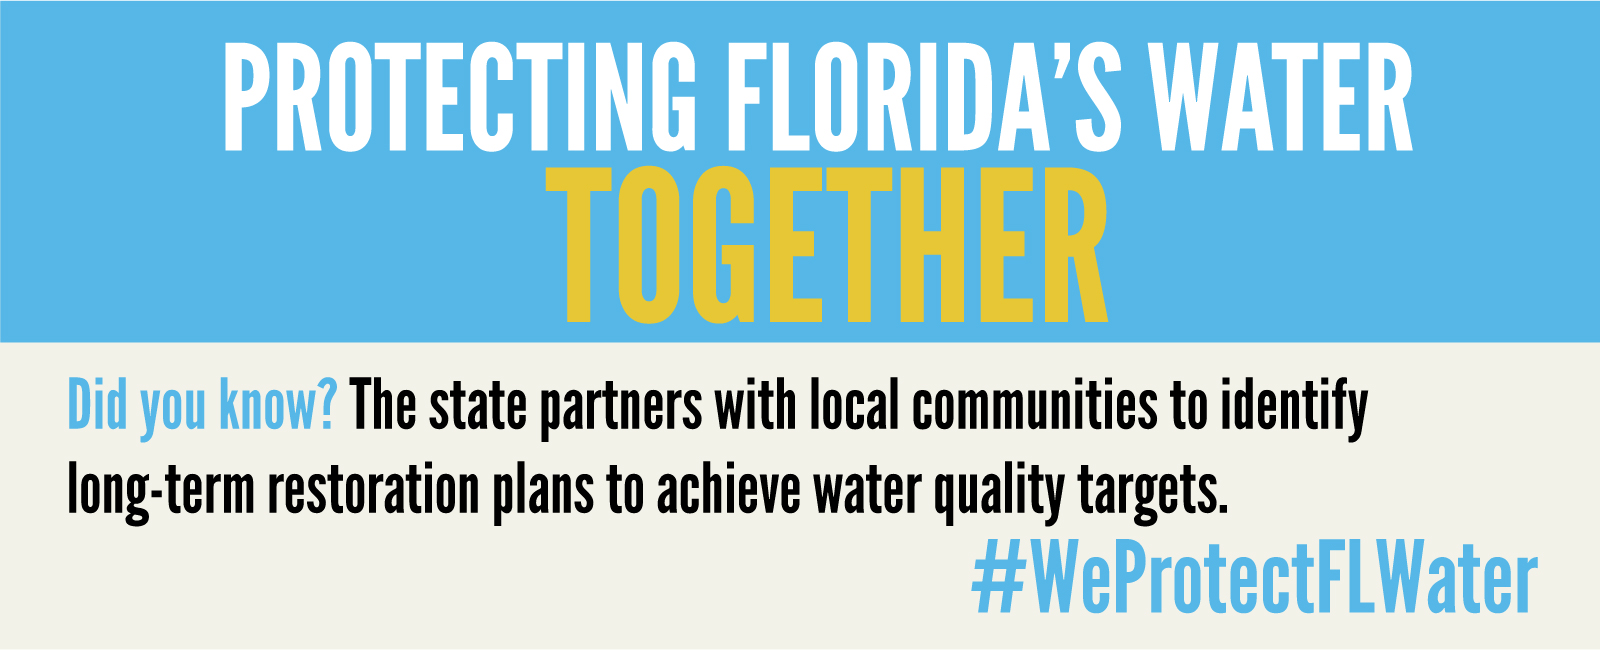 DYK? The state partners with local communities to identify long-term restoration plans to achieve water quality targets. #WeProtectFLWater